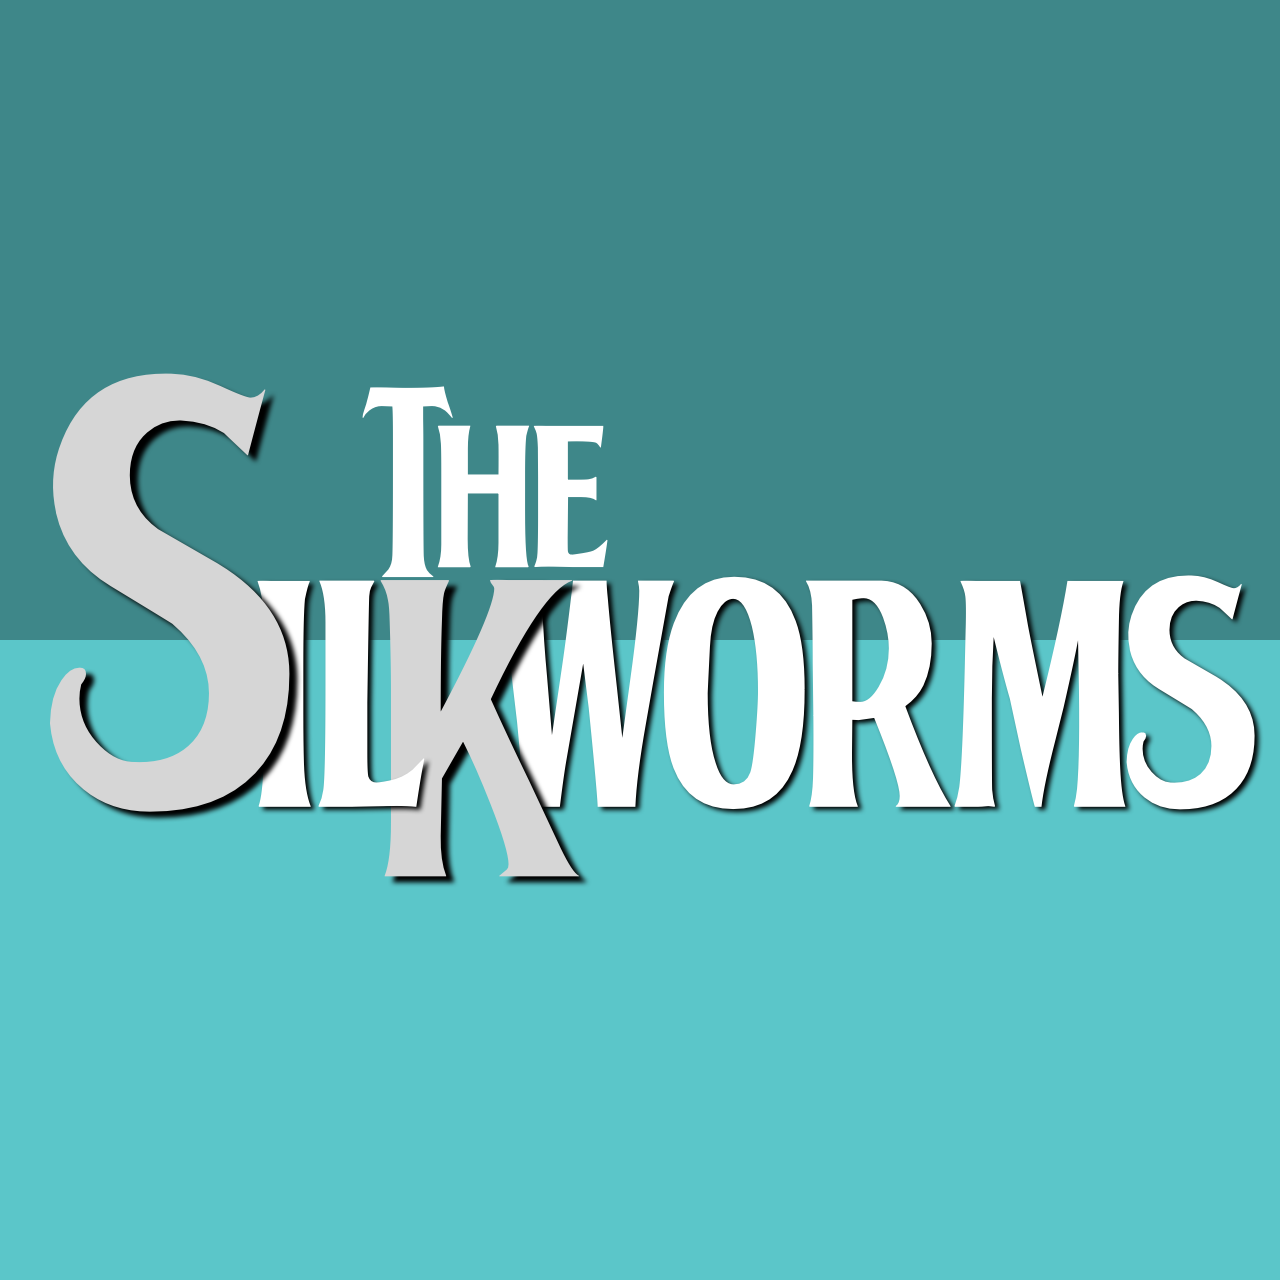 the_silkworms